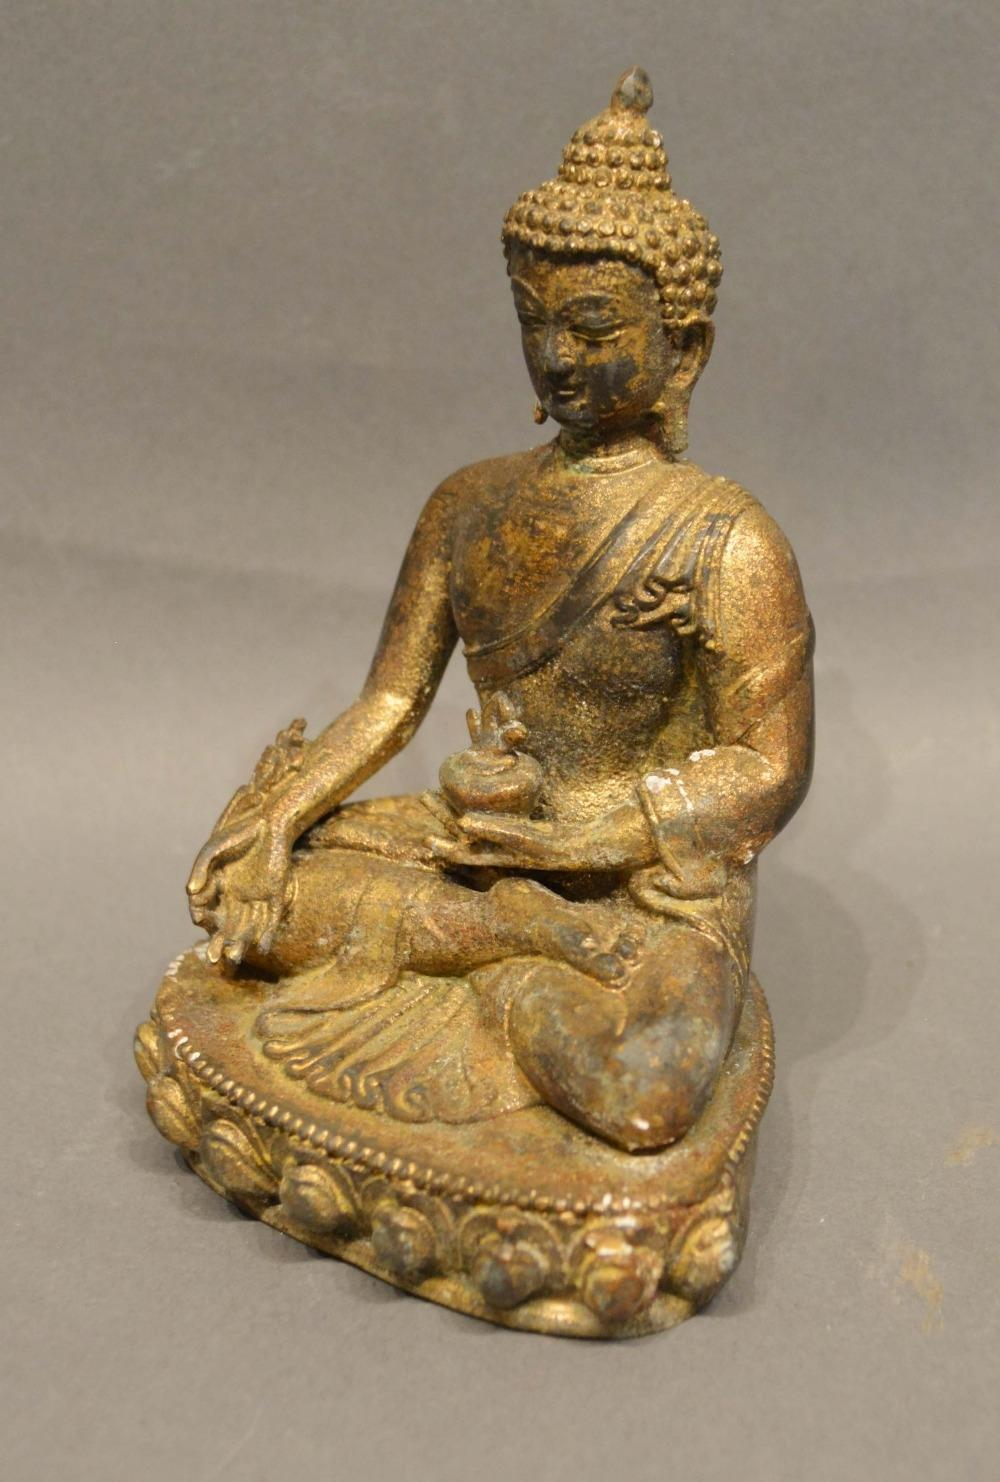 Lot 288 - A Patinated Bronze Model in the Form of Buddha, 13cm tall